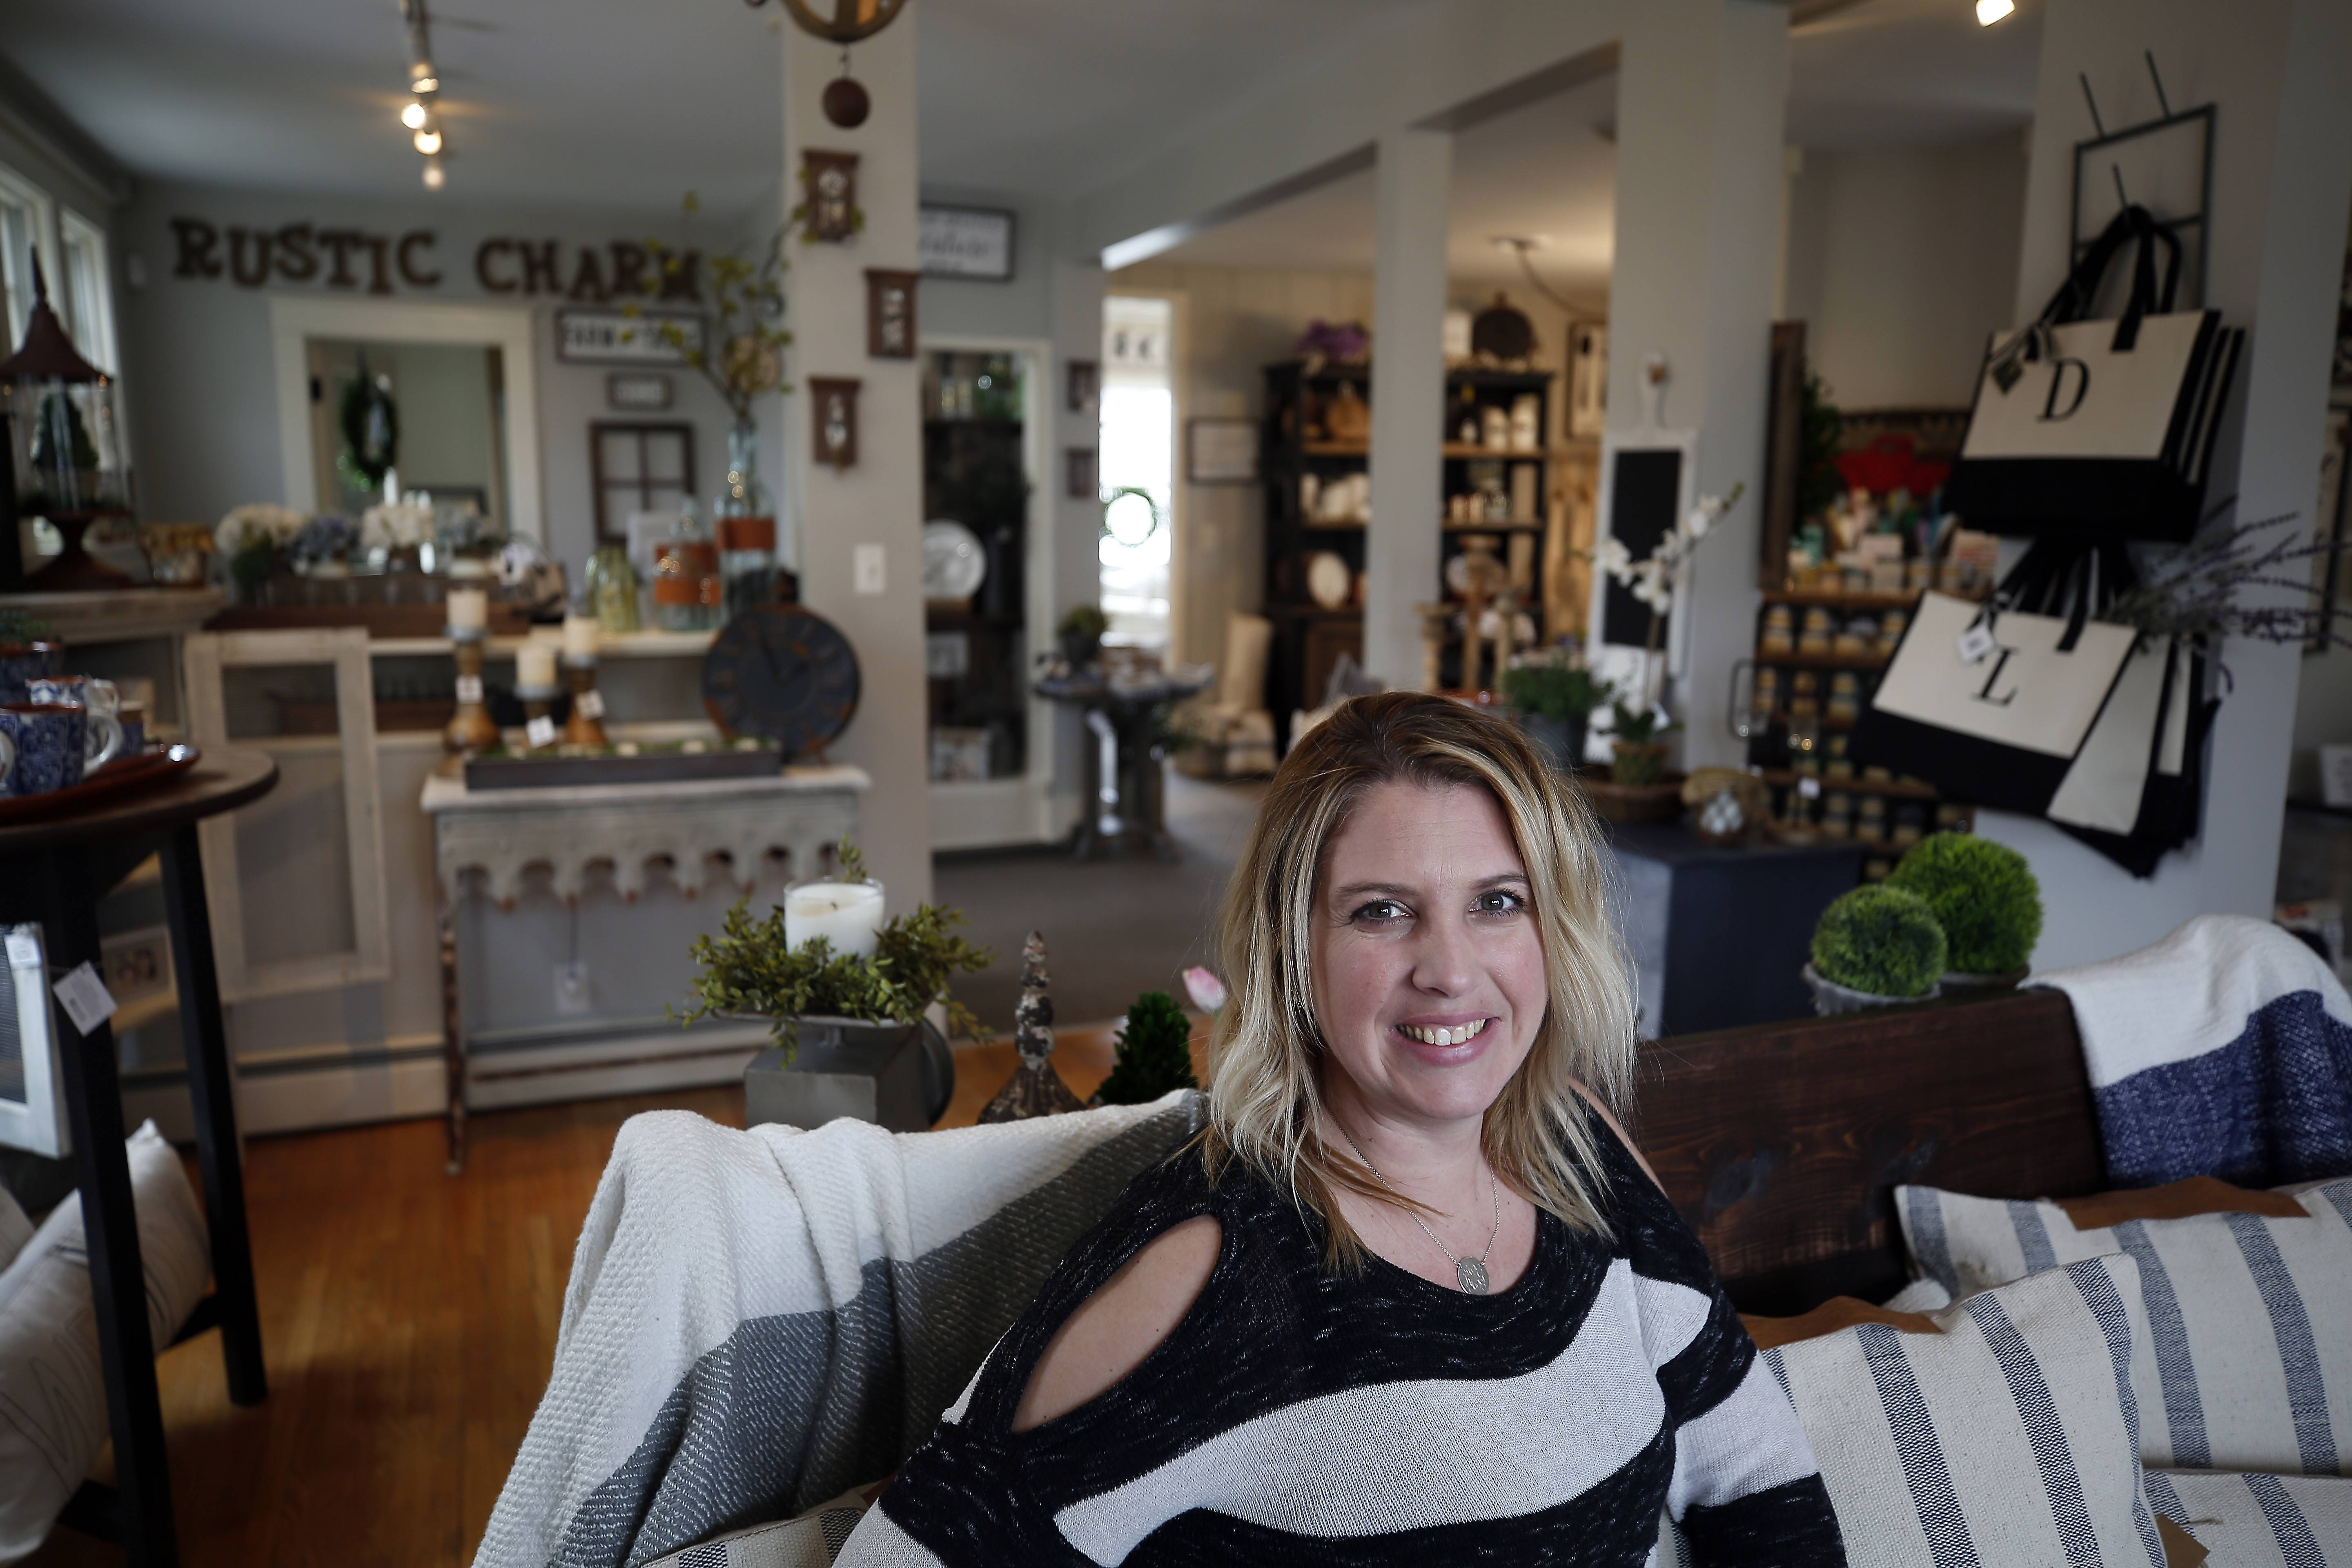 Kelly Volz is co-owner of Rustic Charm in downtown Geneva, a store that sells hand-picked home decor and furniture.